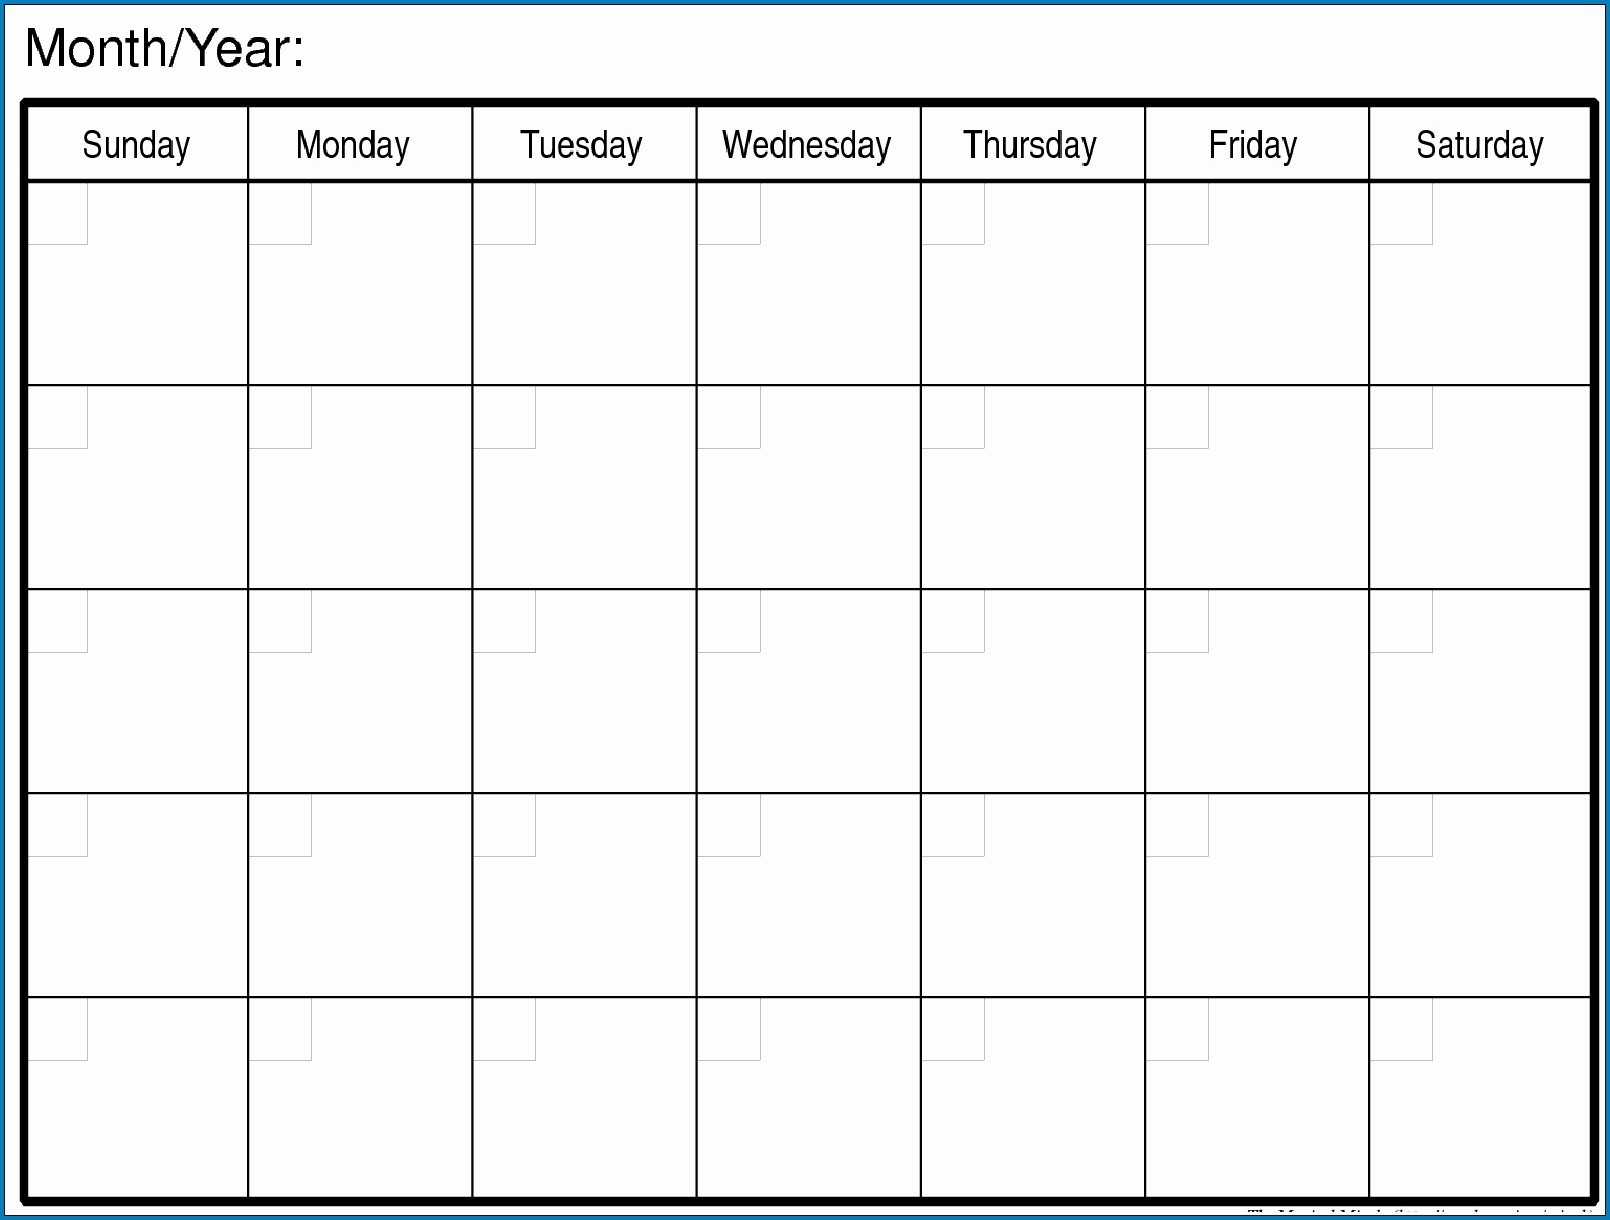 Free Blank Printable Monthly Calendar Monday – Friday-Printable Monthly Calendar Monday Start